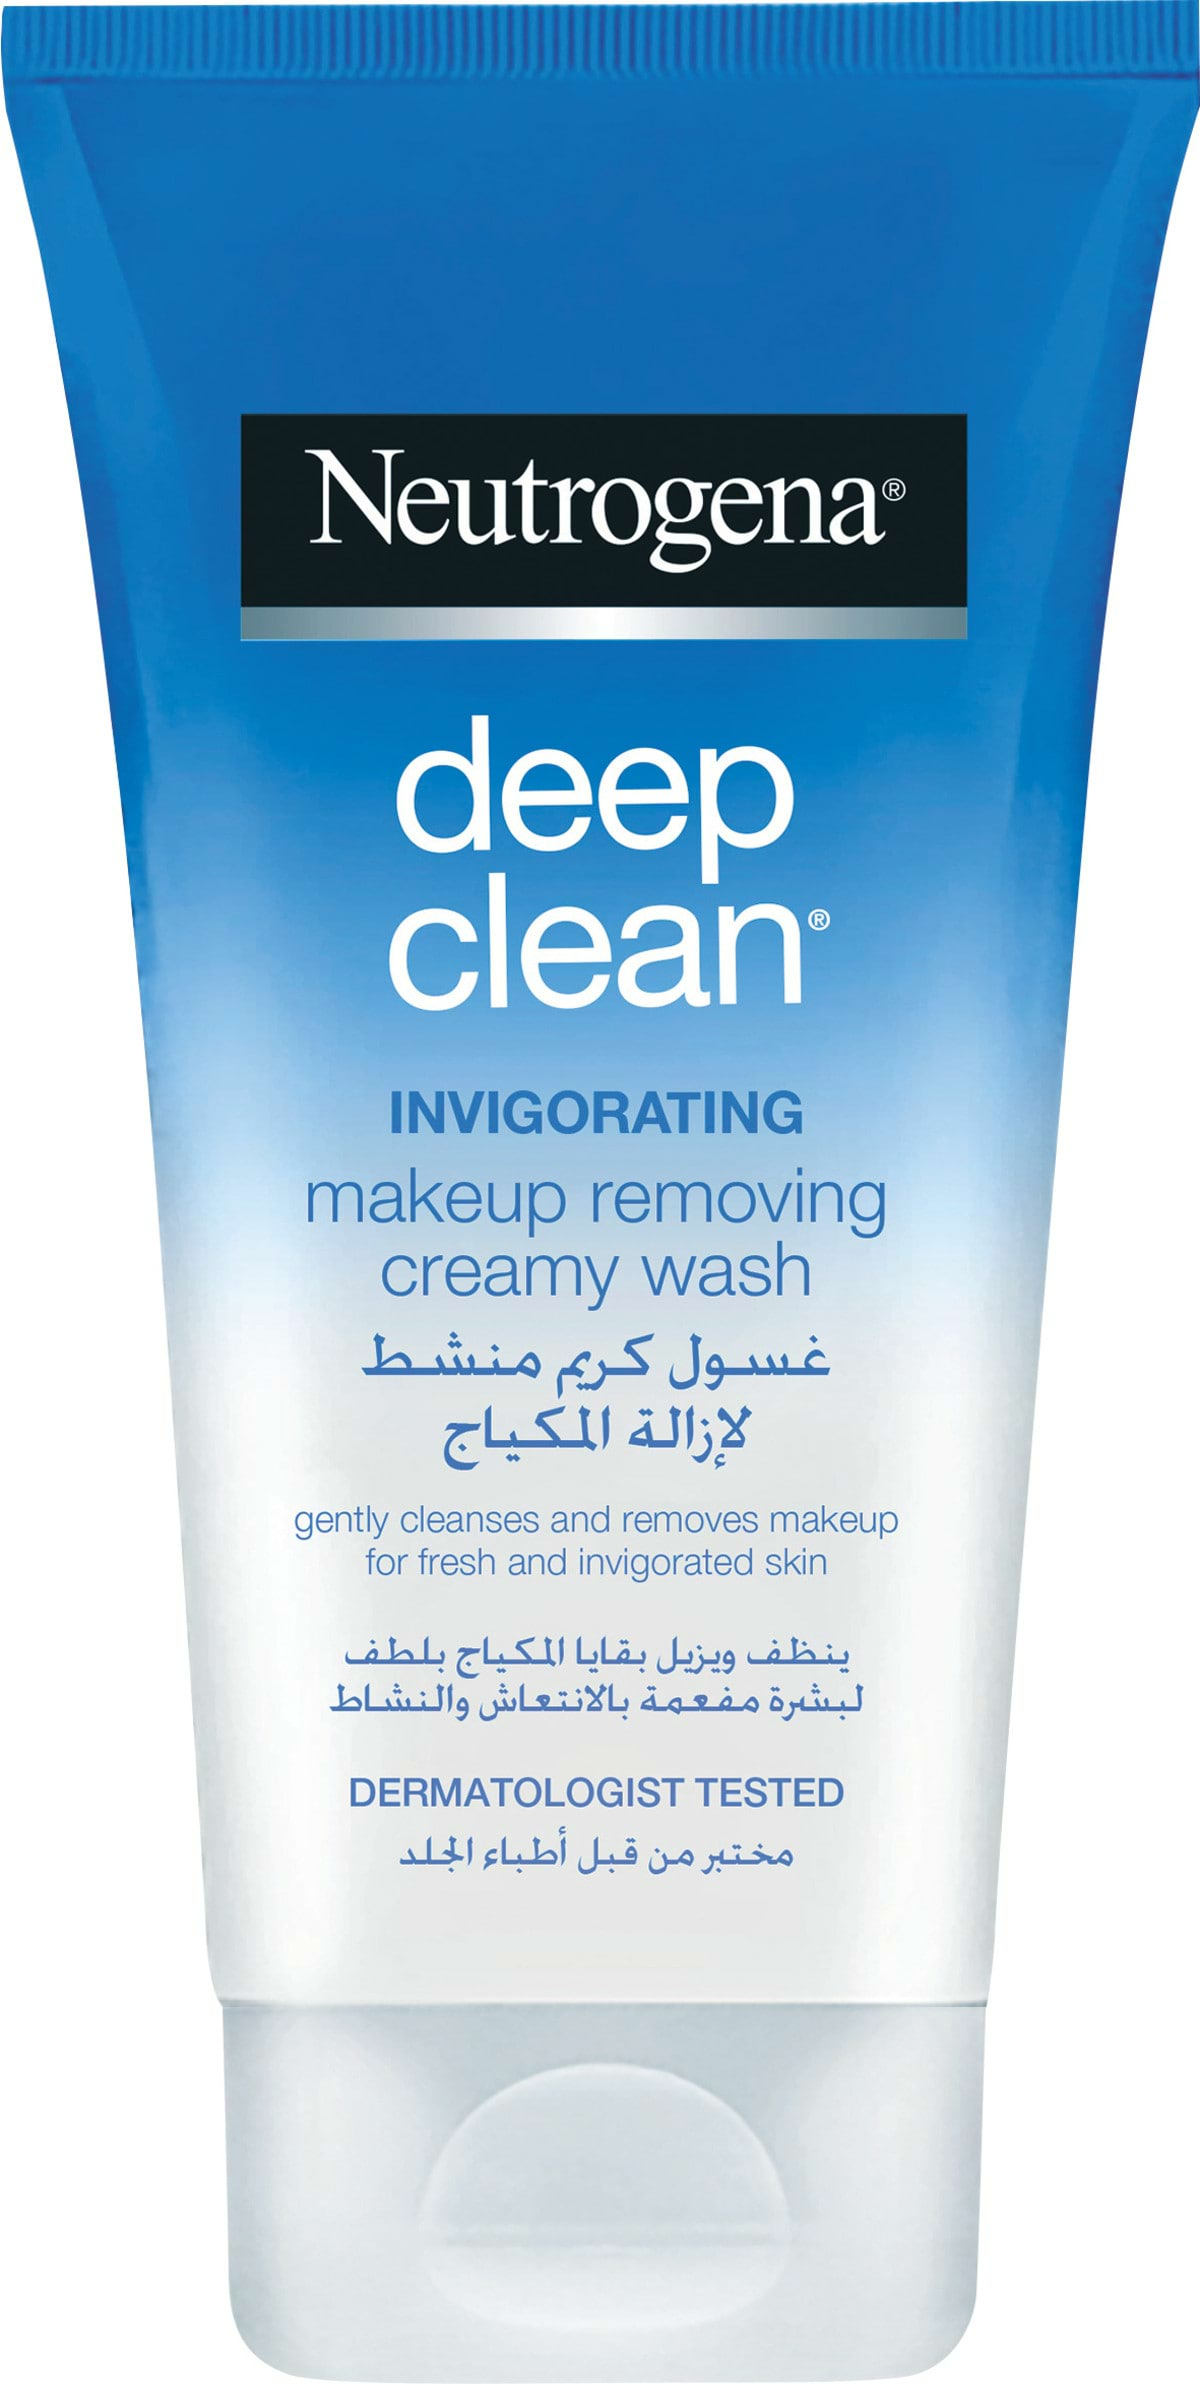 NTG_Deep Clean_Invigorating Make-up Removing Creamy Wash